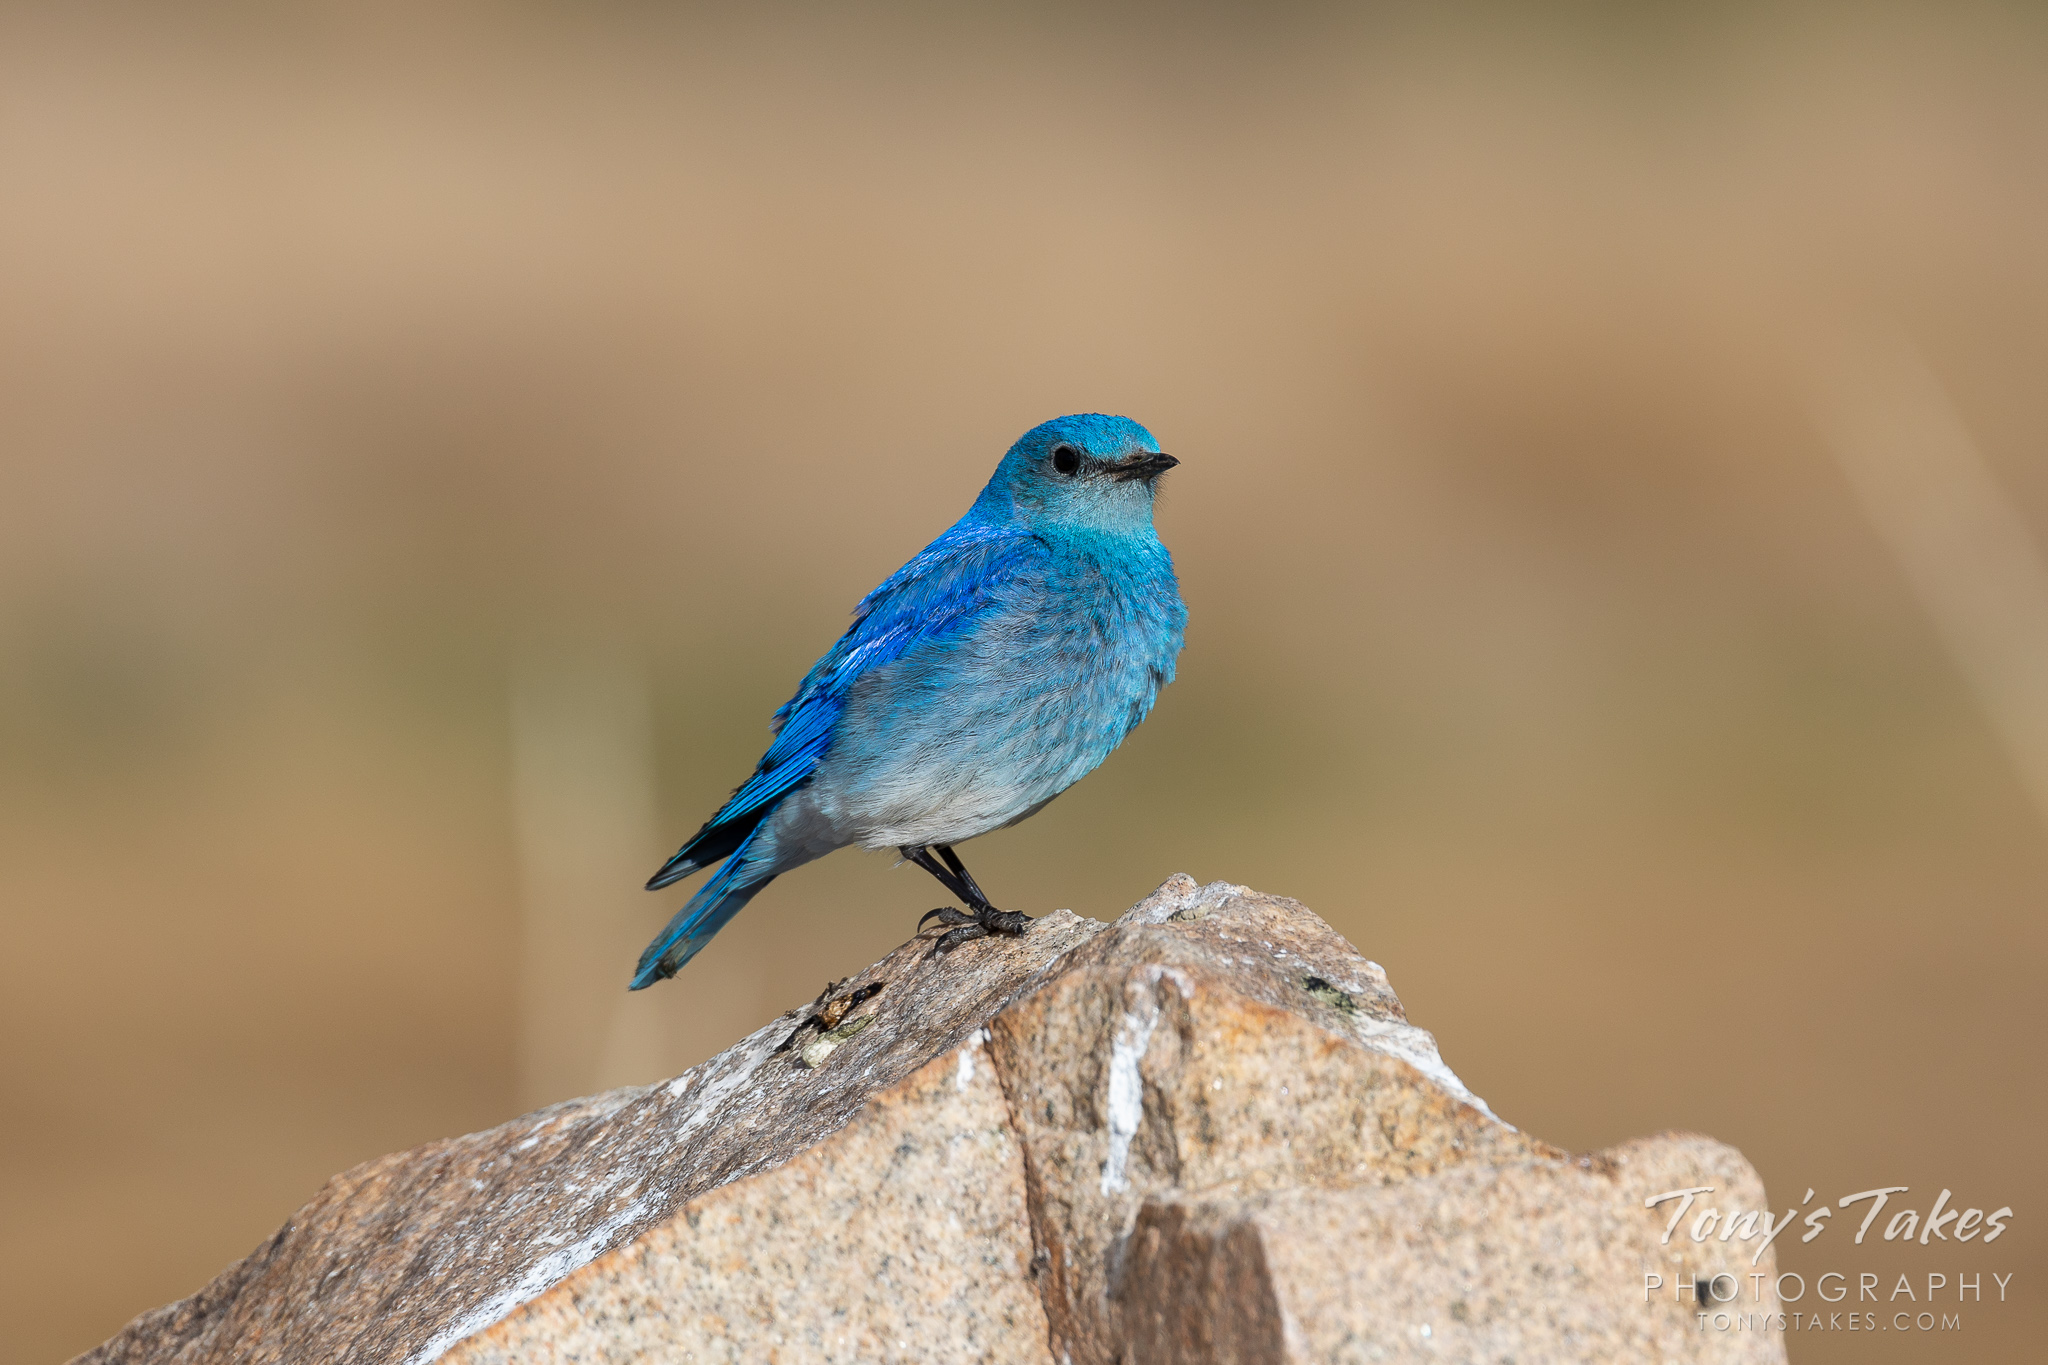 A mountain bluebird poses on a rock at Eleven Mile State Park in Colorado. (© Tony's Takes)